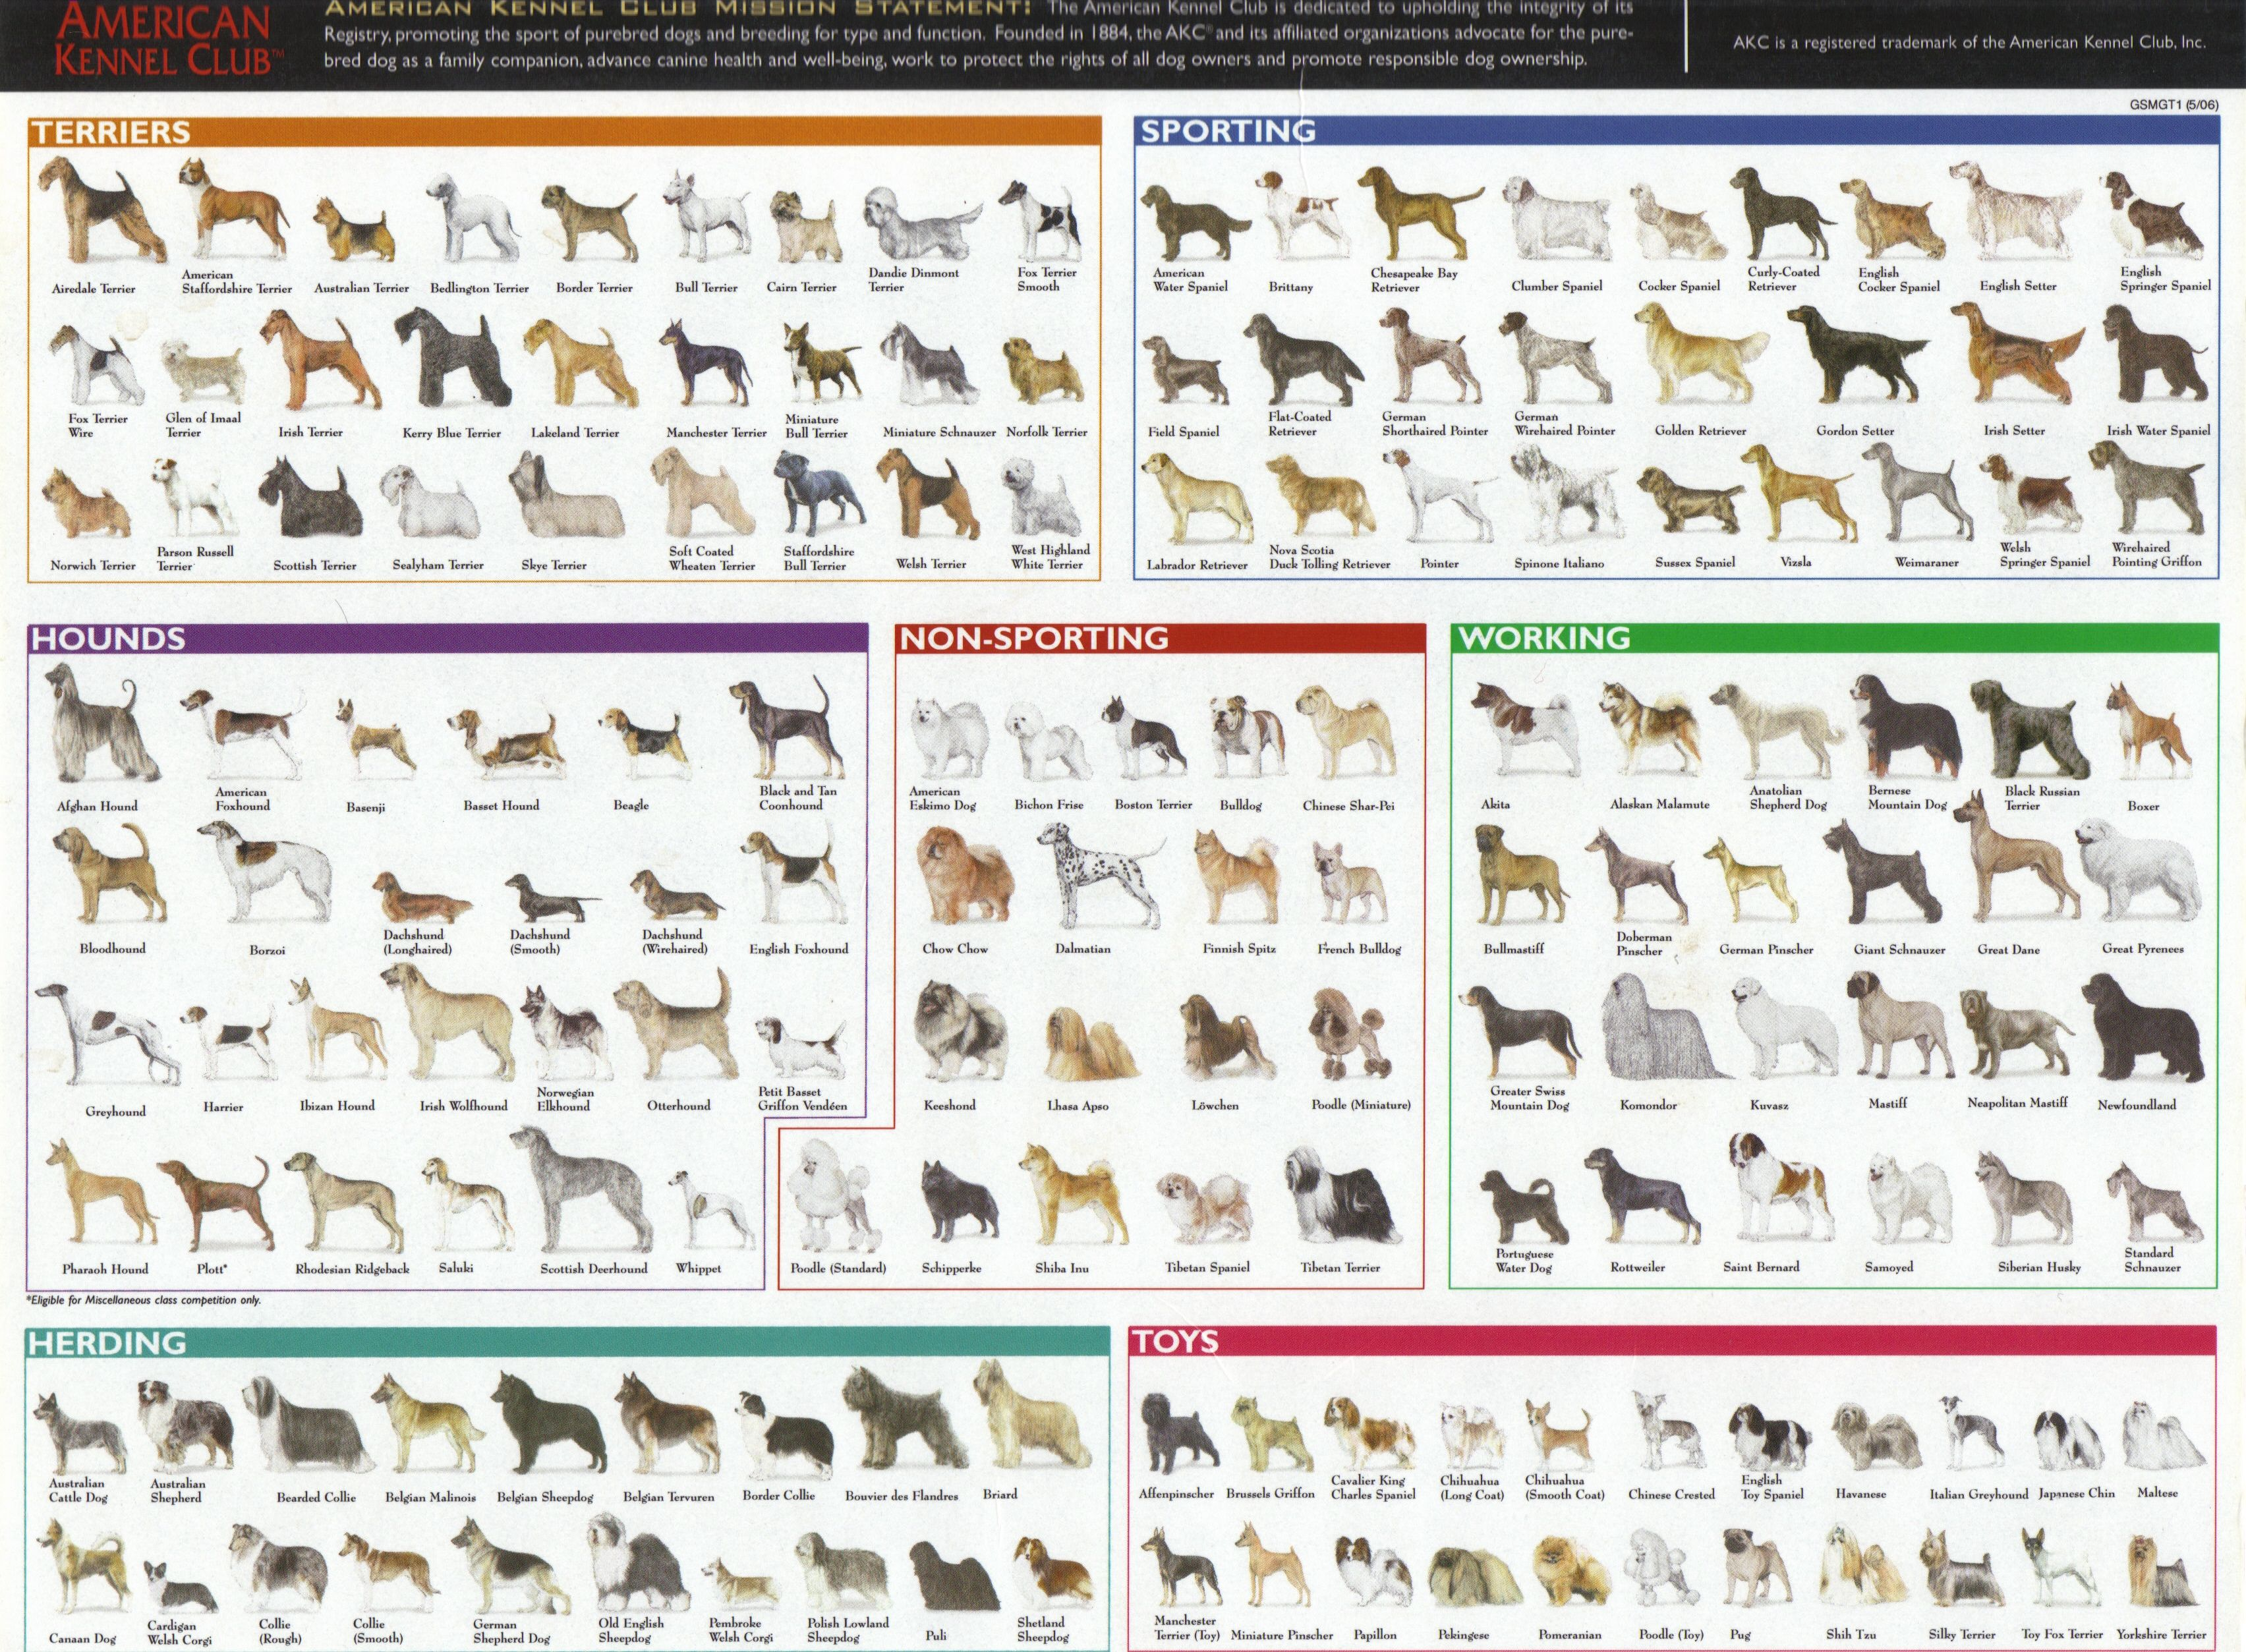 chicken breed chart Google Search Dog breeds chart